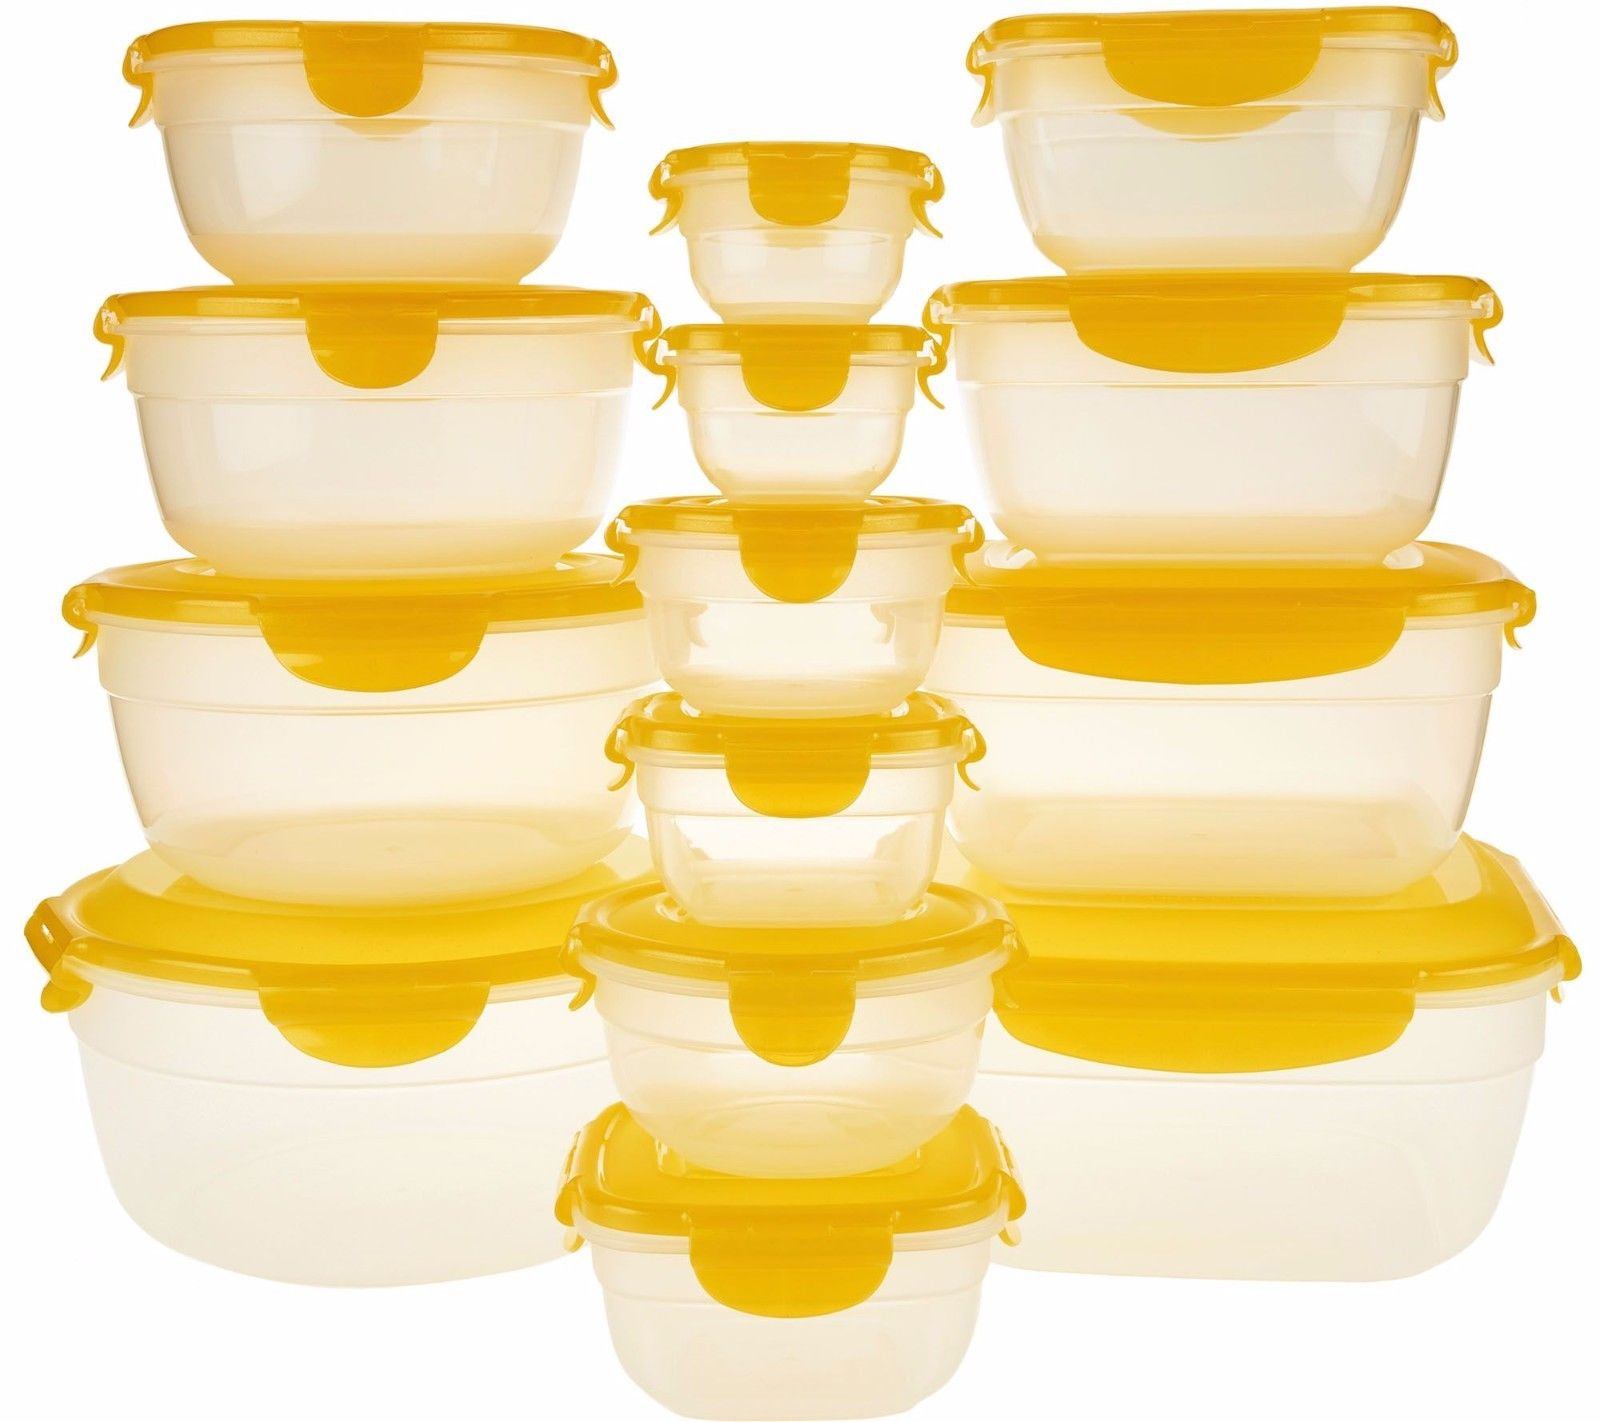 Lock & N Lock Food Storage Containers 14 pc w/ lids 2 w Handles Food Safe K44450 1